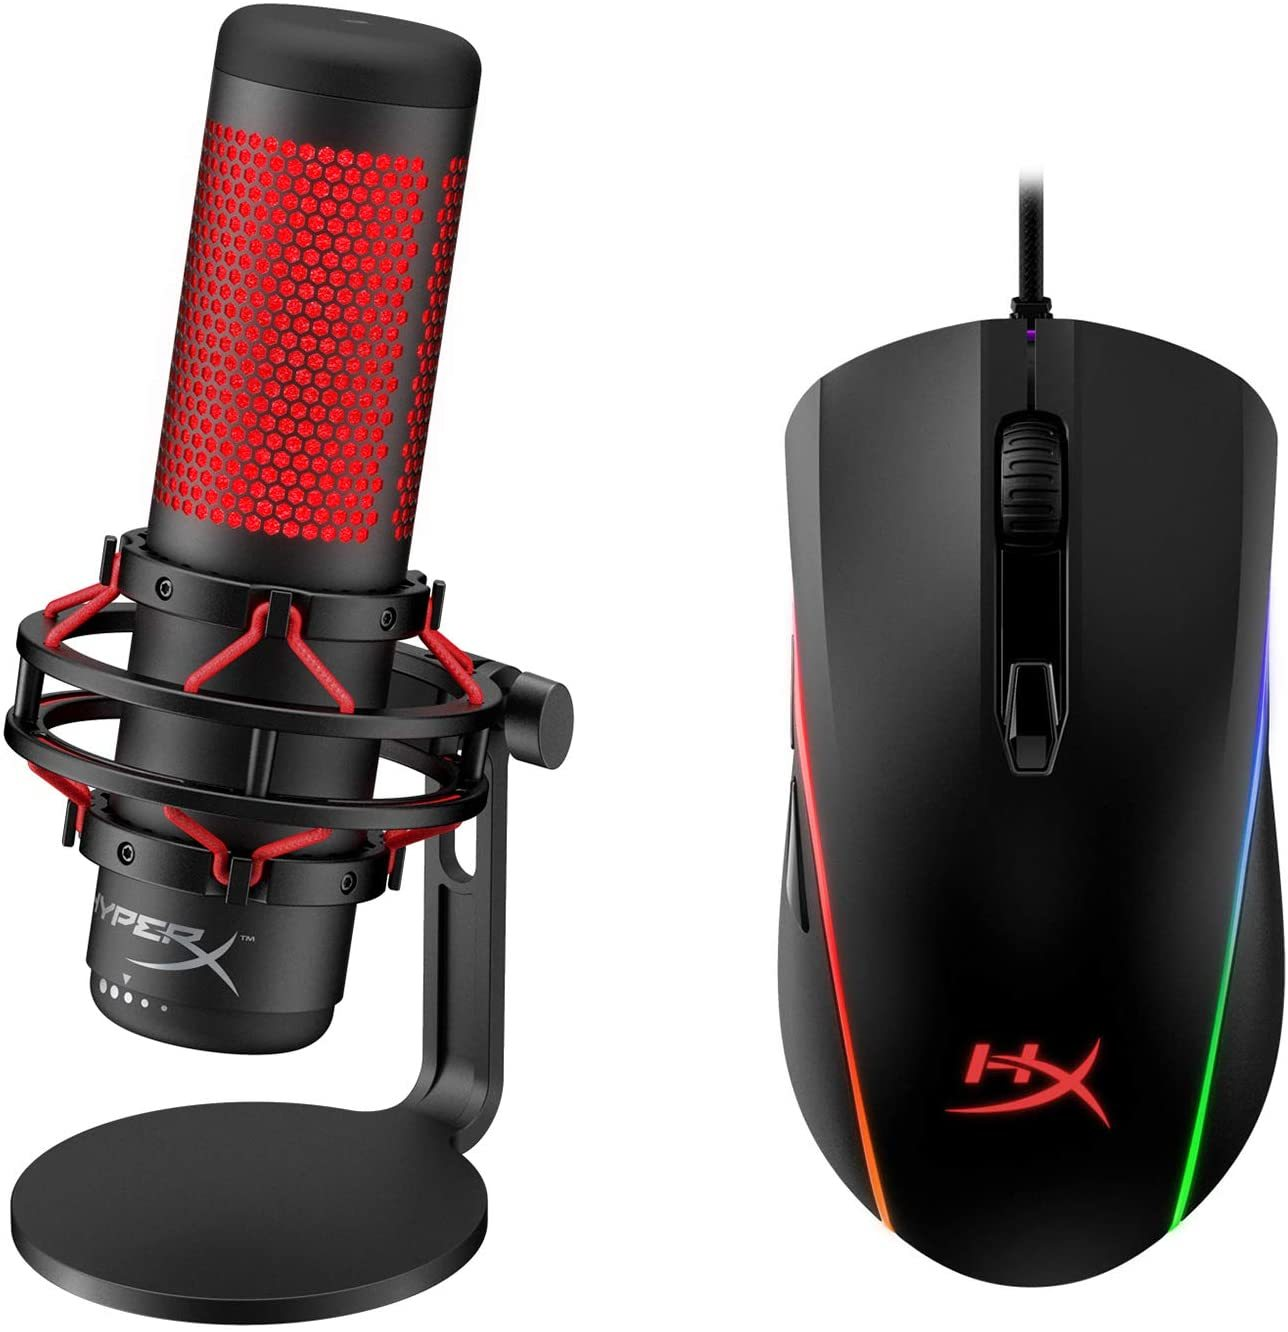 USB Condenser Gaming Microphone and HyperX Pulsefire Surge - RGB Wired Optical Gaming Mouse